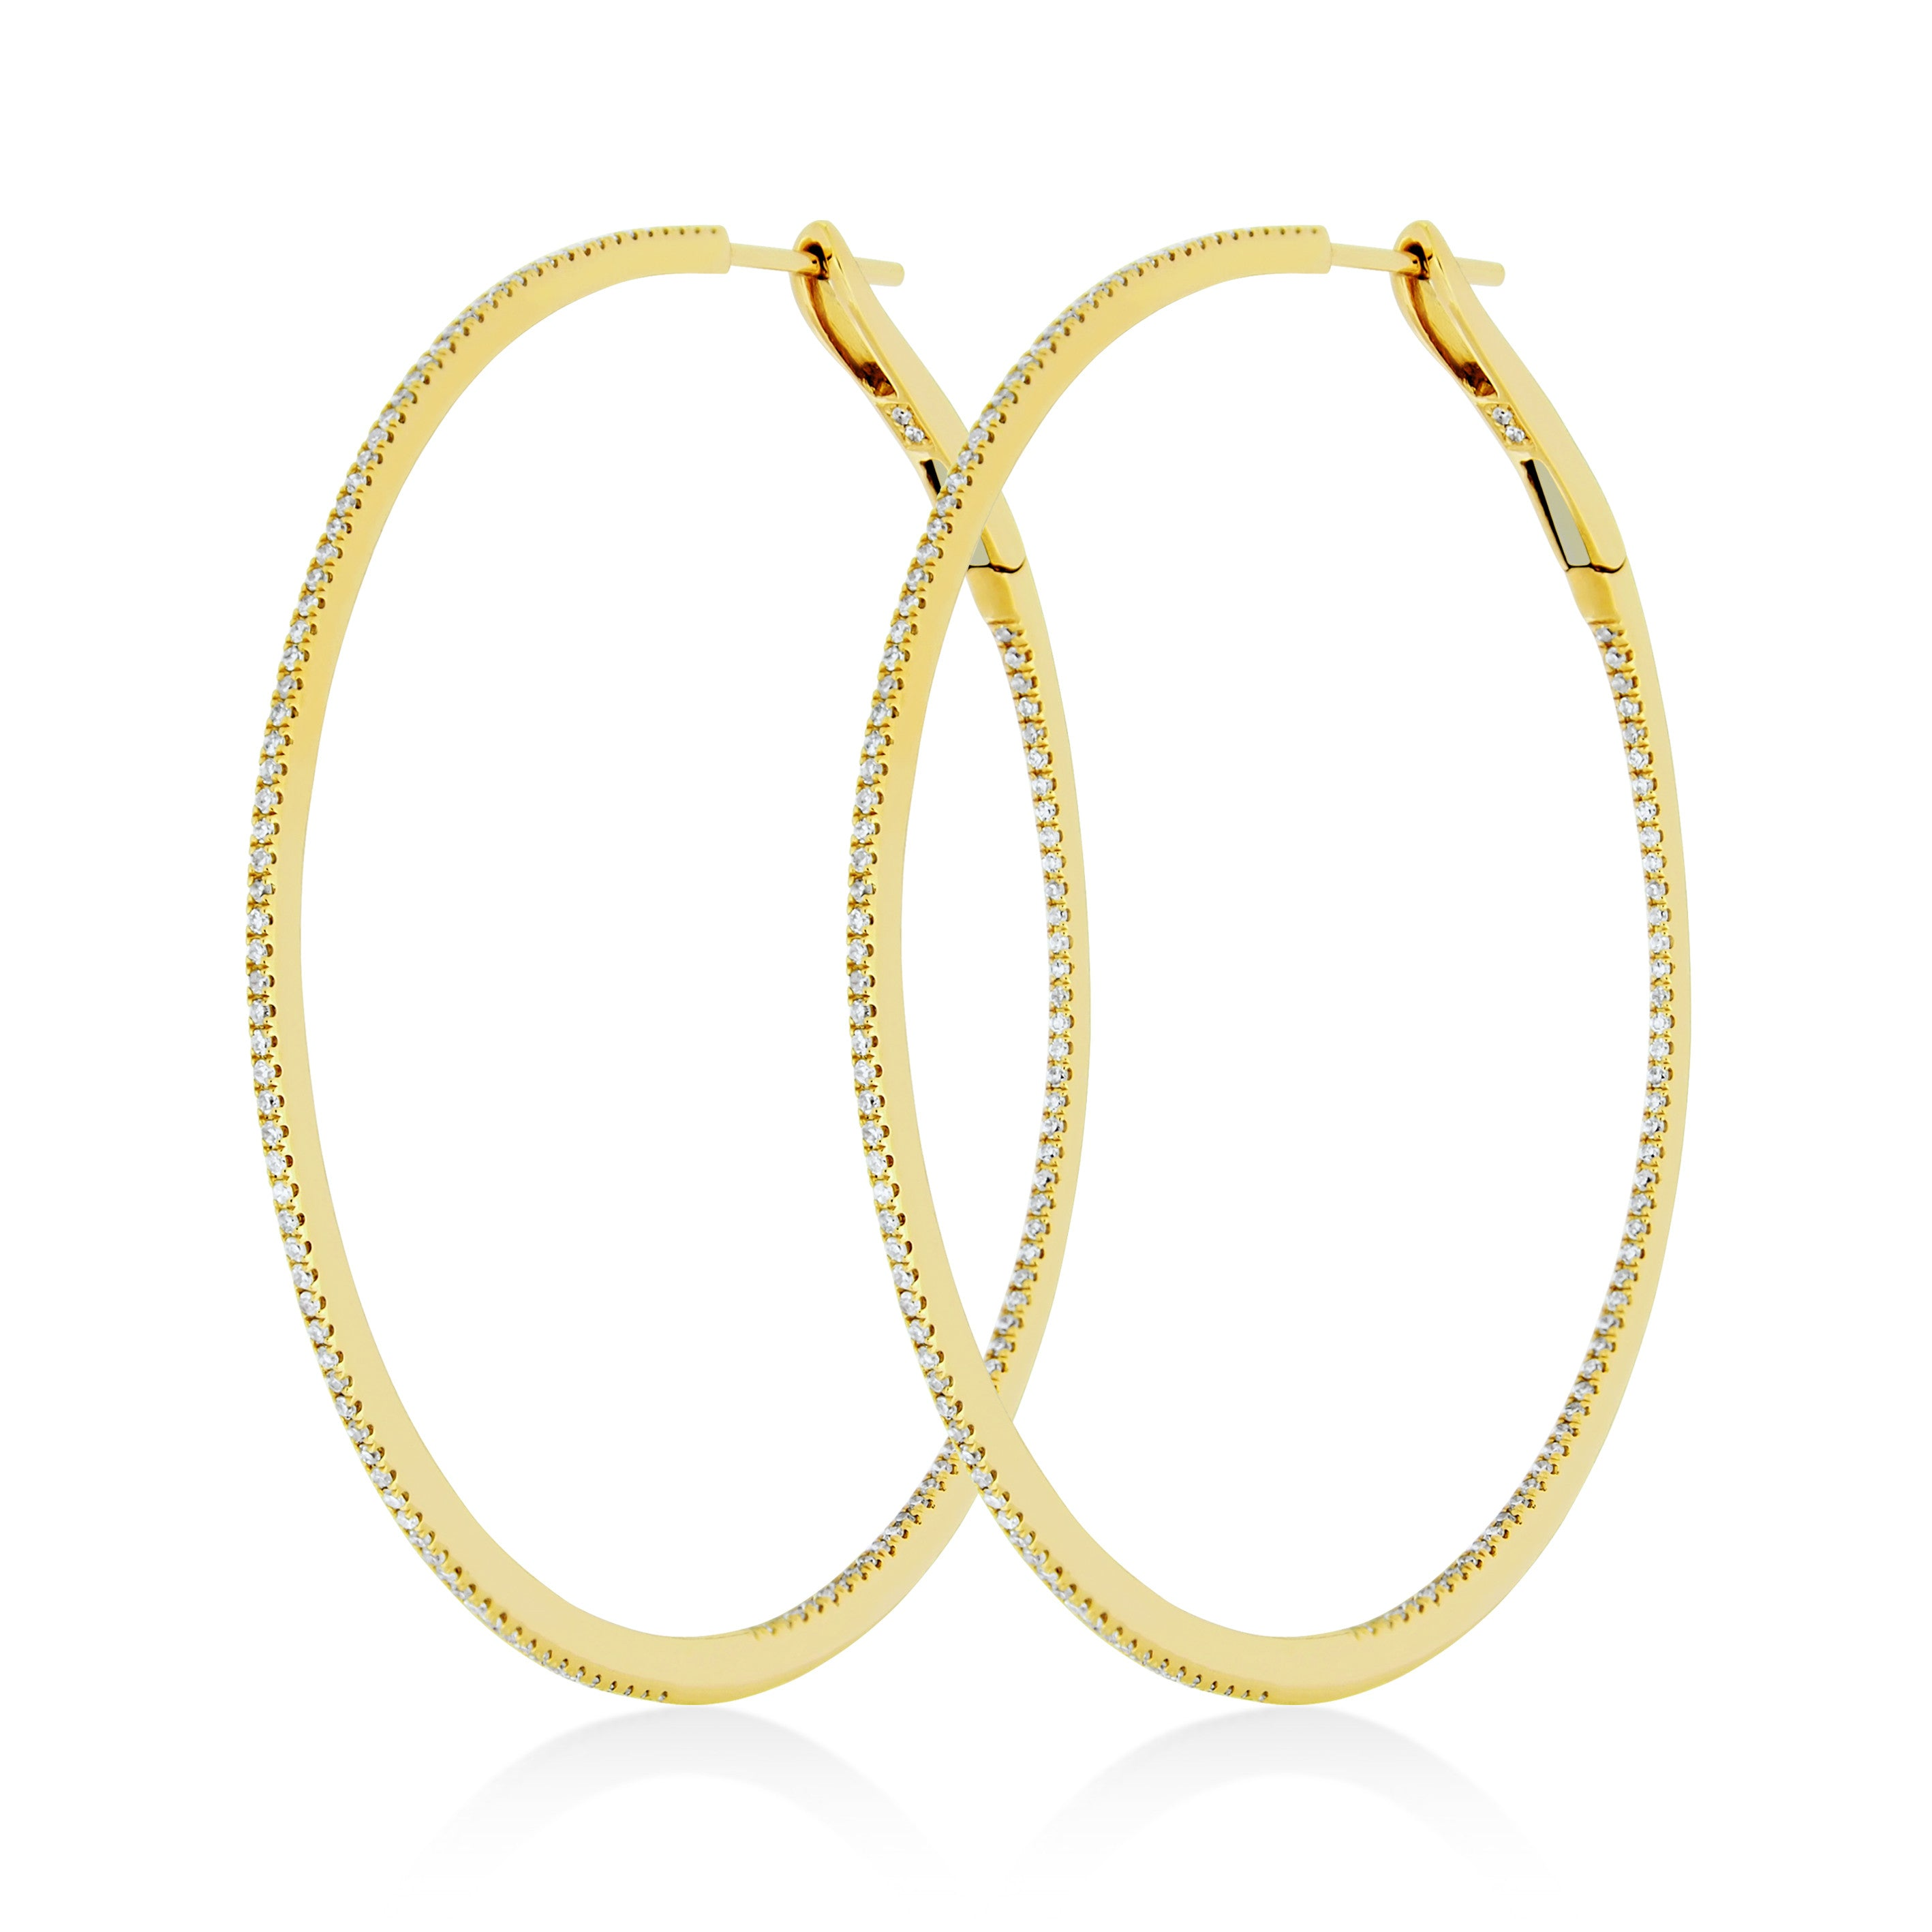 Large Hoop Earrings , Earrings - Fine Jewelry, RoCHIC, RoCHIC Fine Jewelry